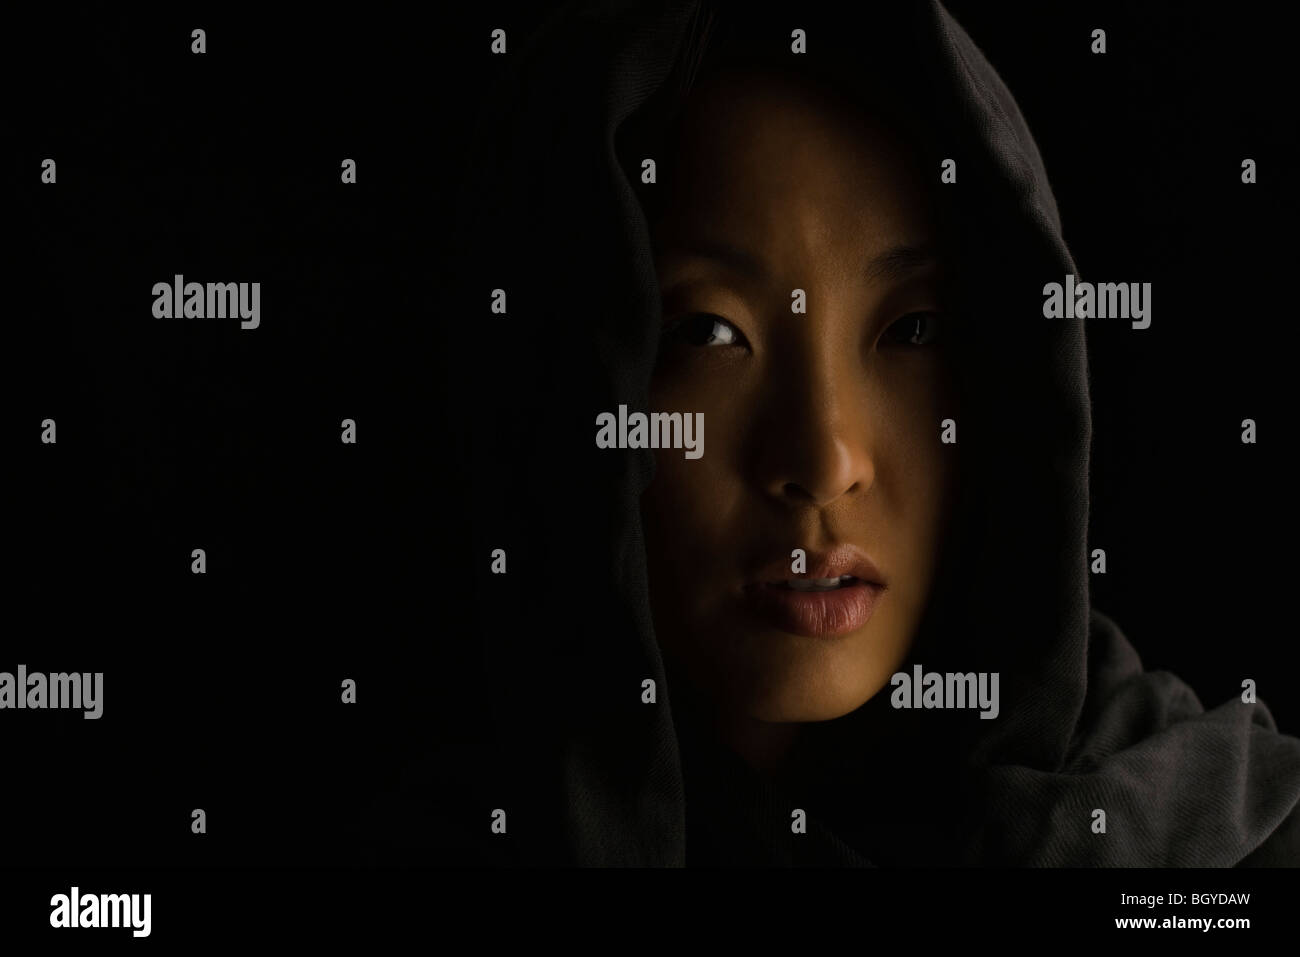 Woman wearing hood, looking apprehensively at camera - Stock Image